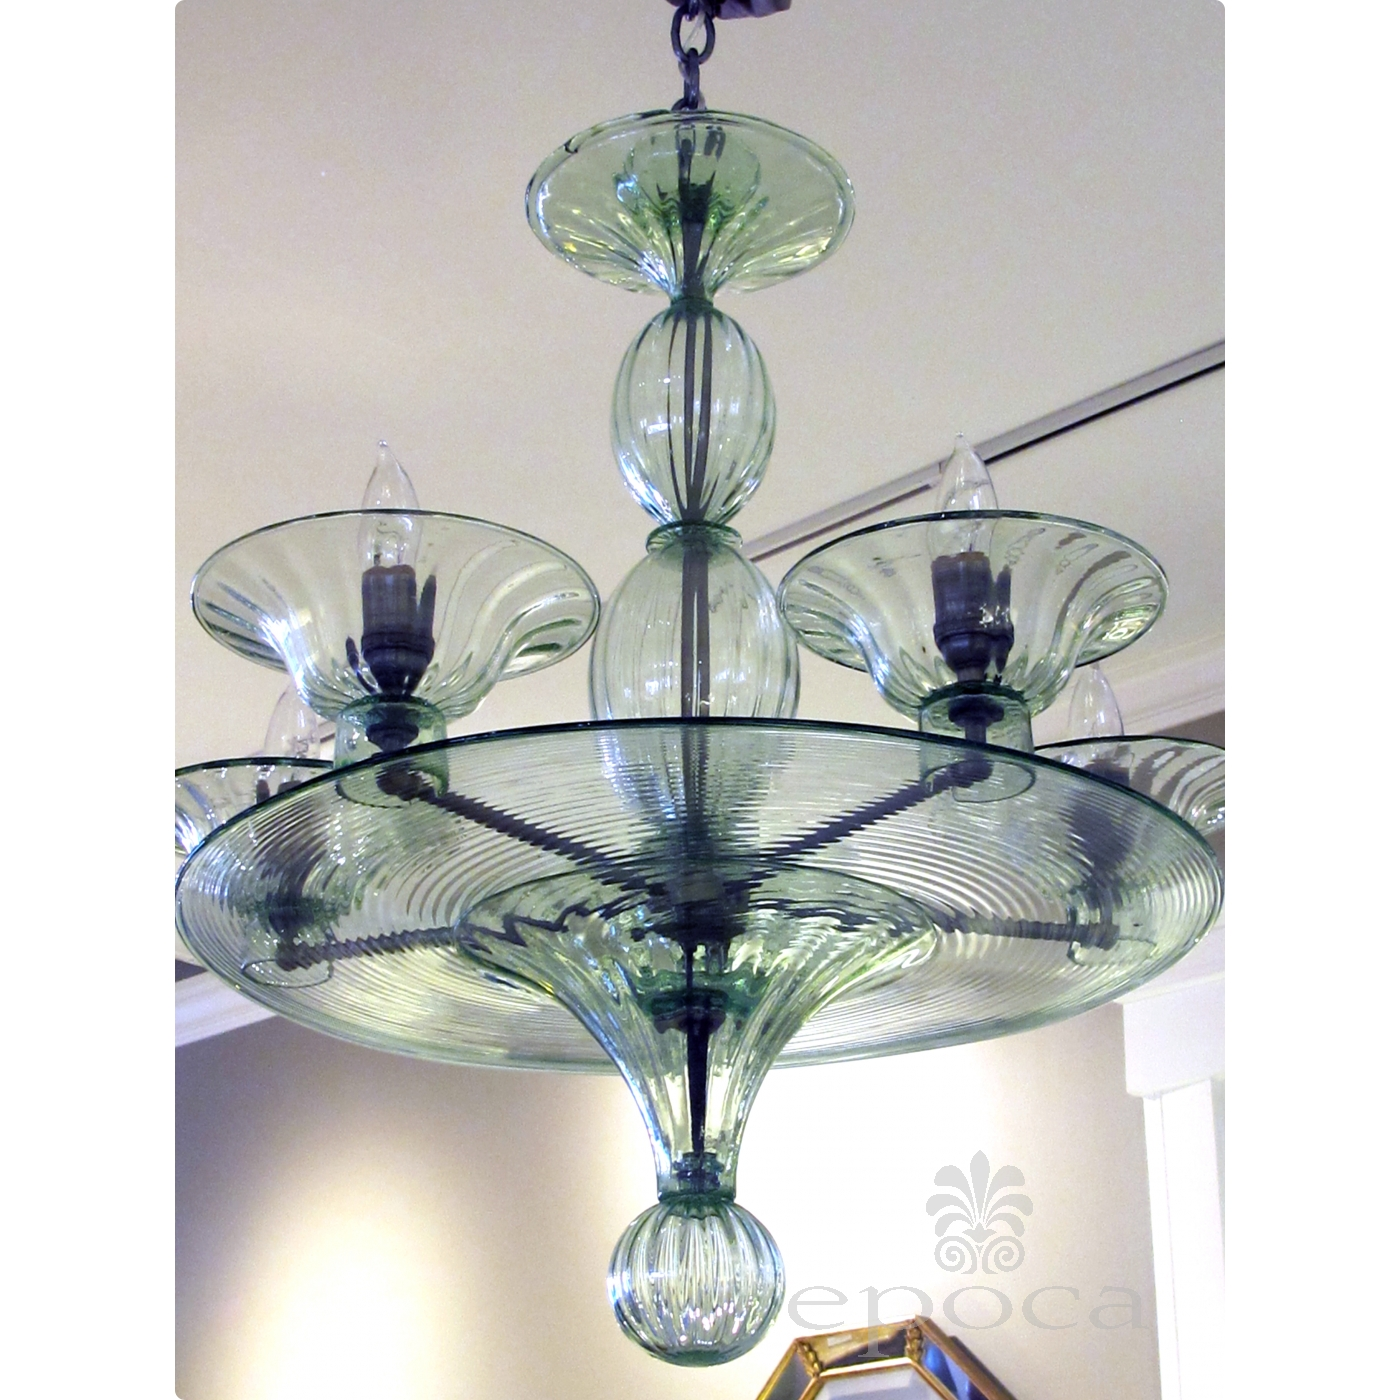 green en giada chandeliers chandelier murano traditional glass